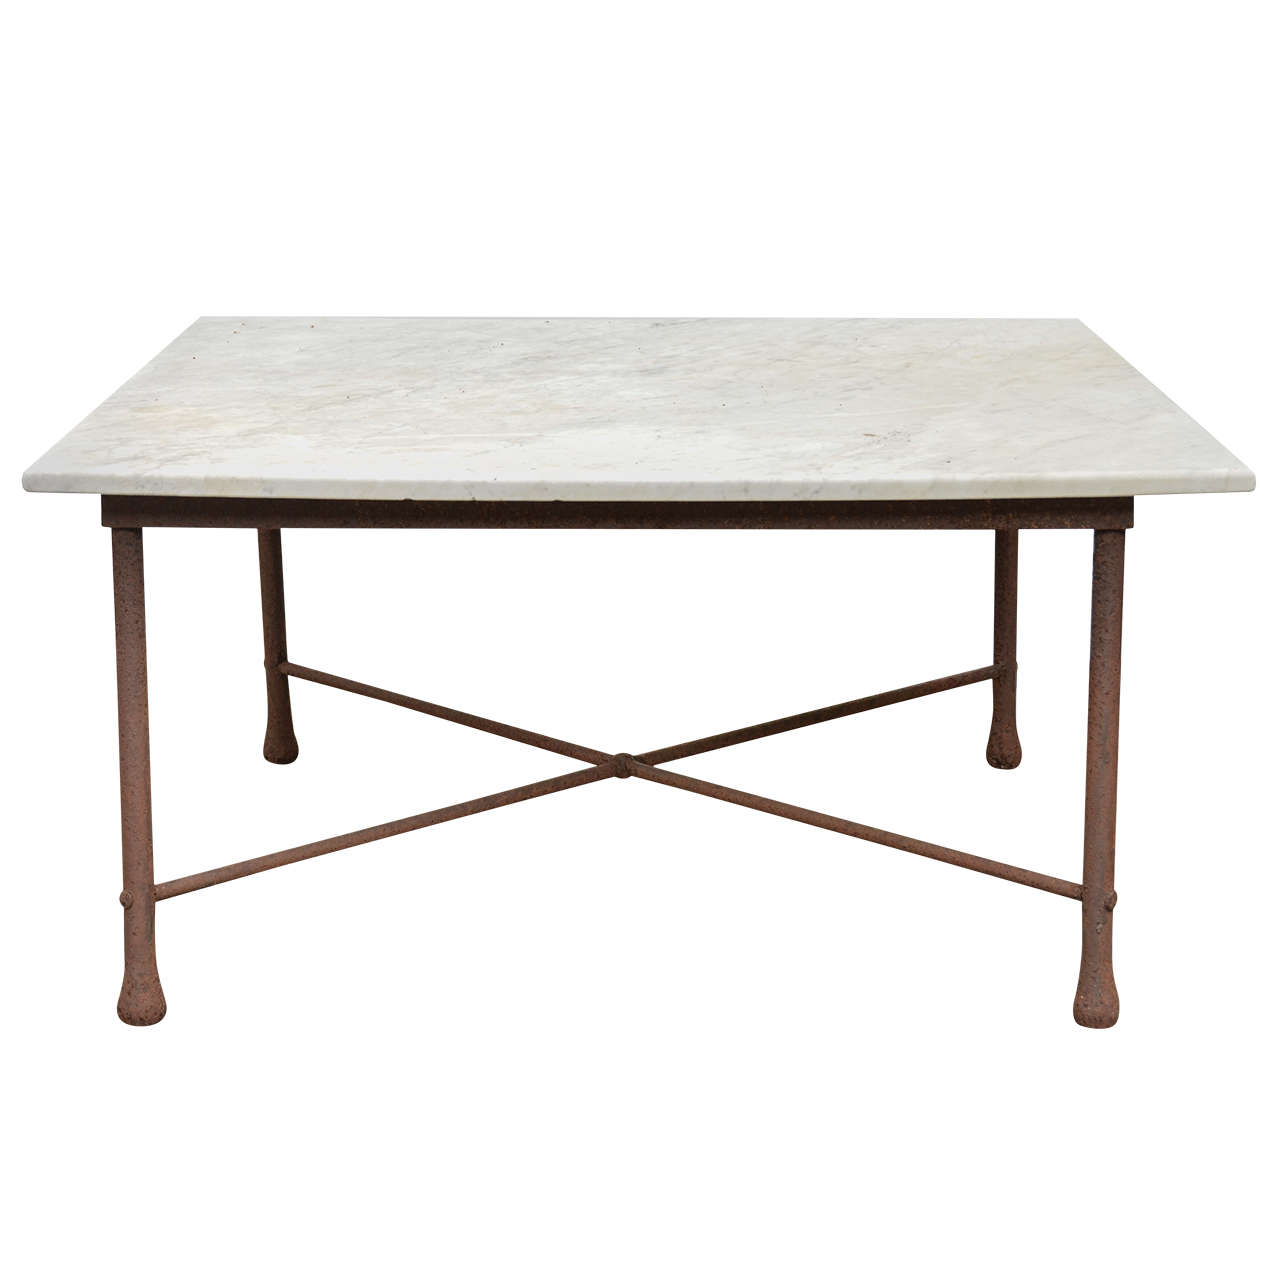 American 1970s wrought iron coffee table with marble top at 1stdibs Wrought iron coffee tables